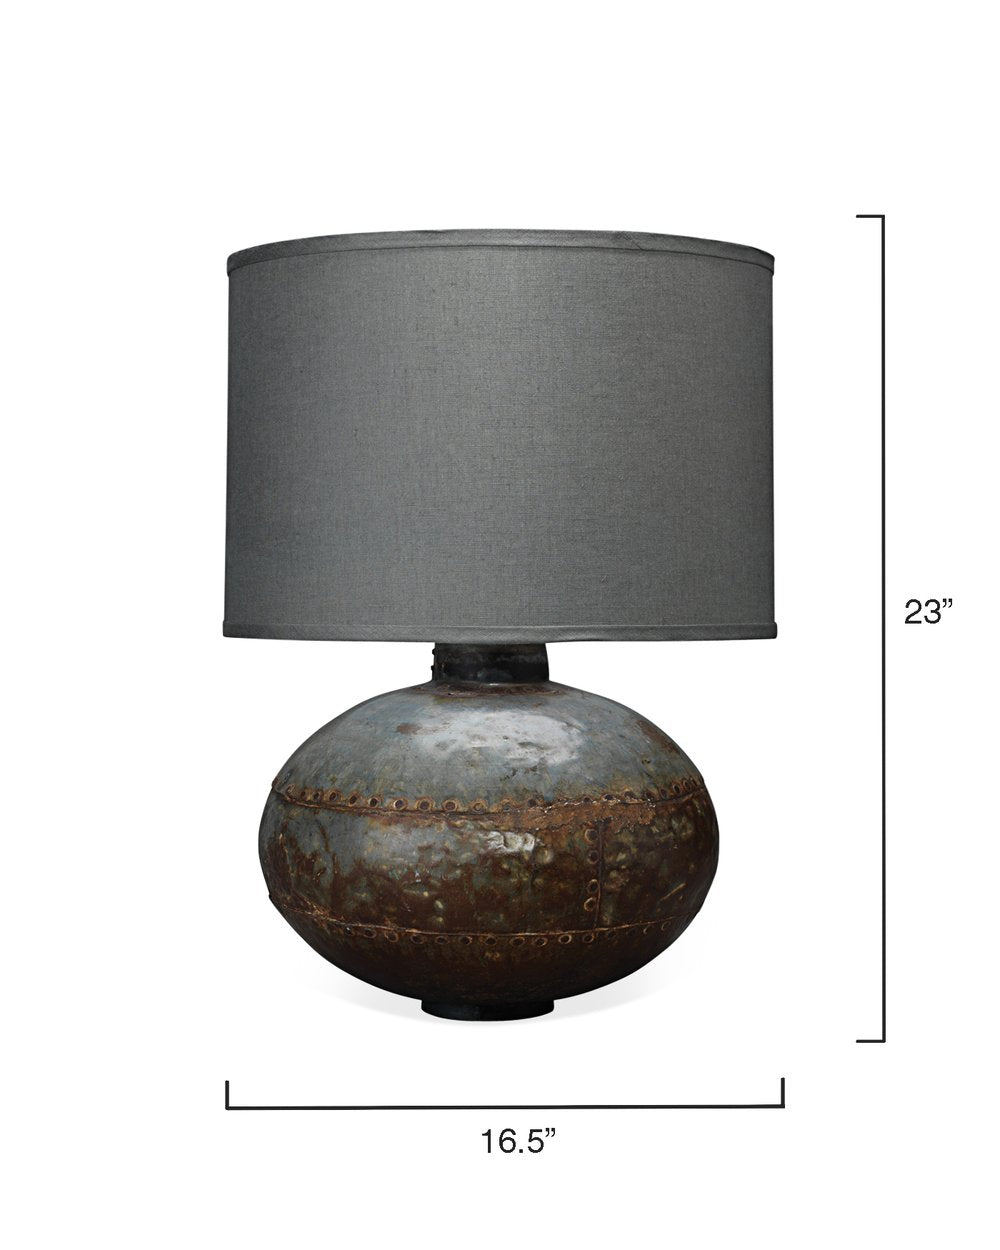 Caisson Table Lamp